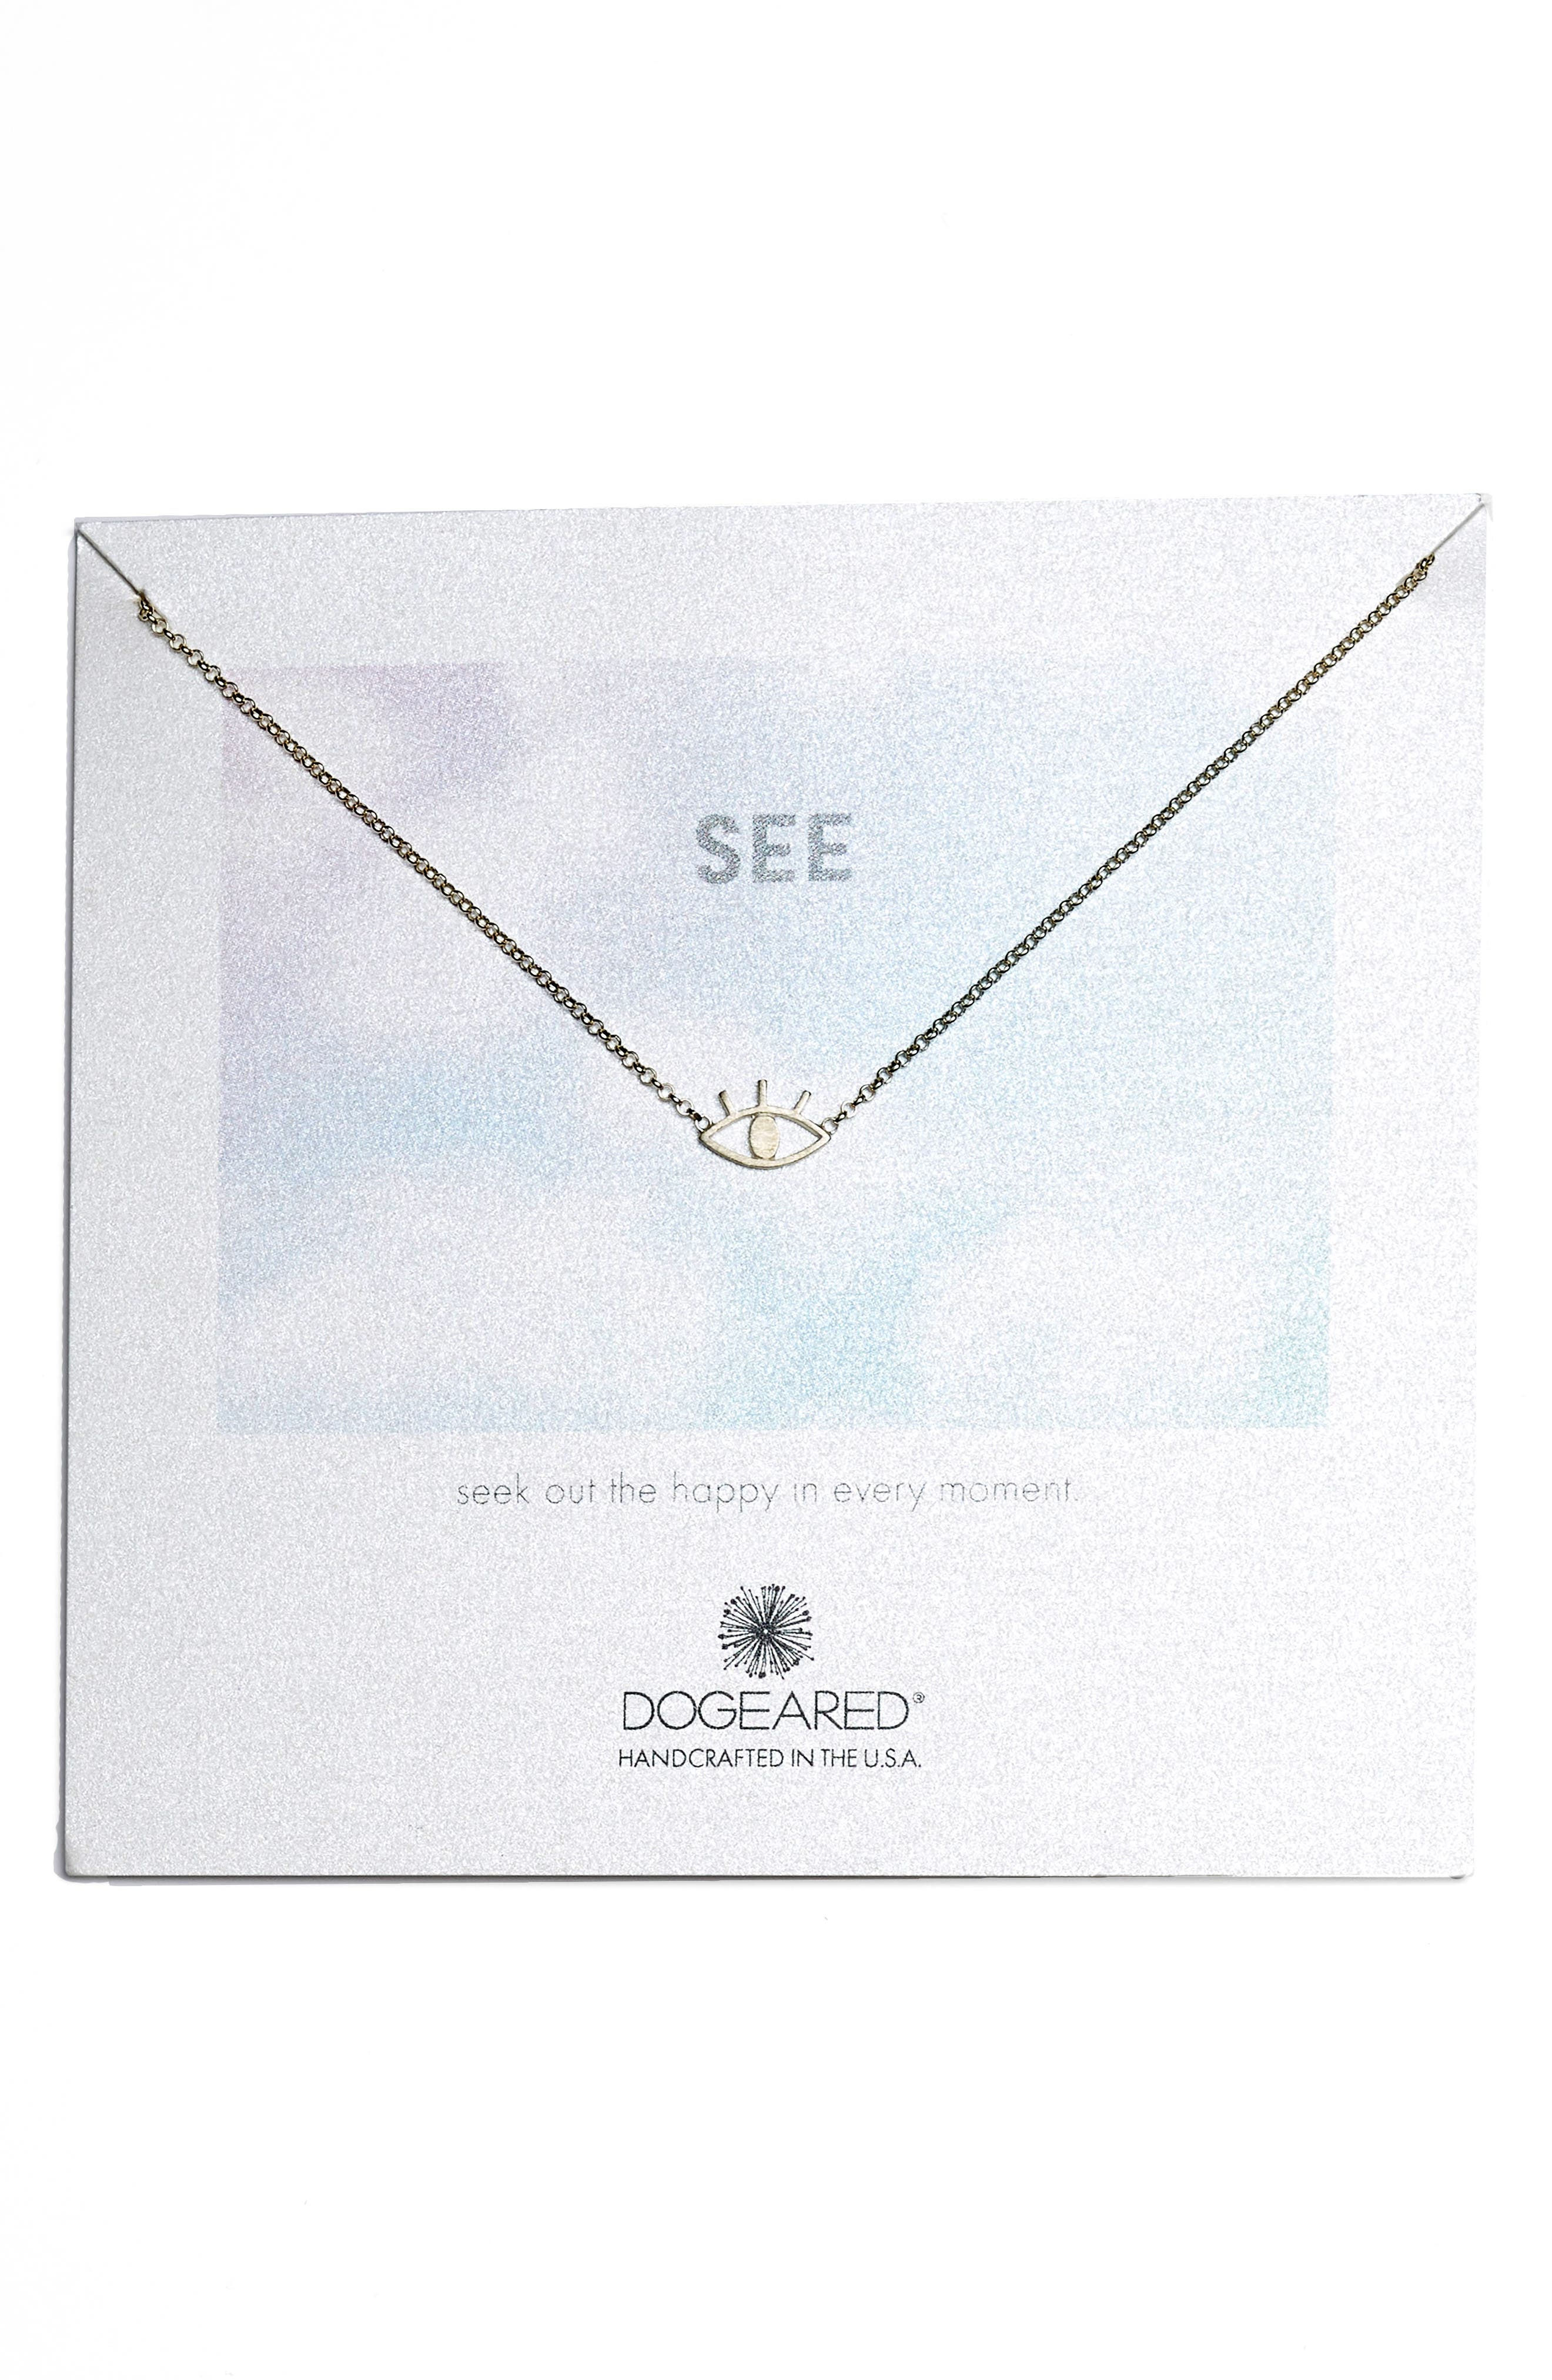 See Open Eye Necklace,                             Main thumbnail 1, color,                             040